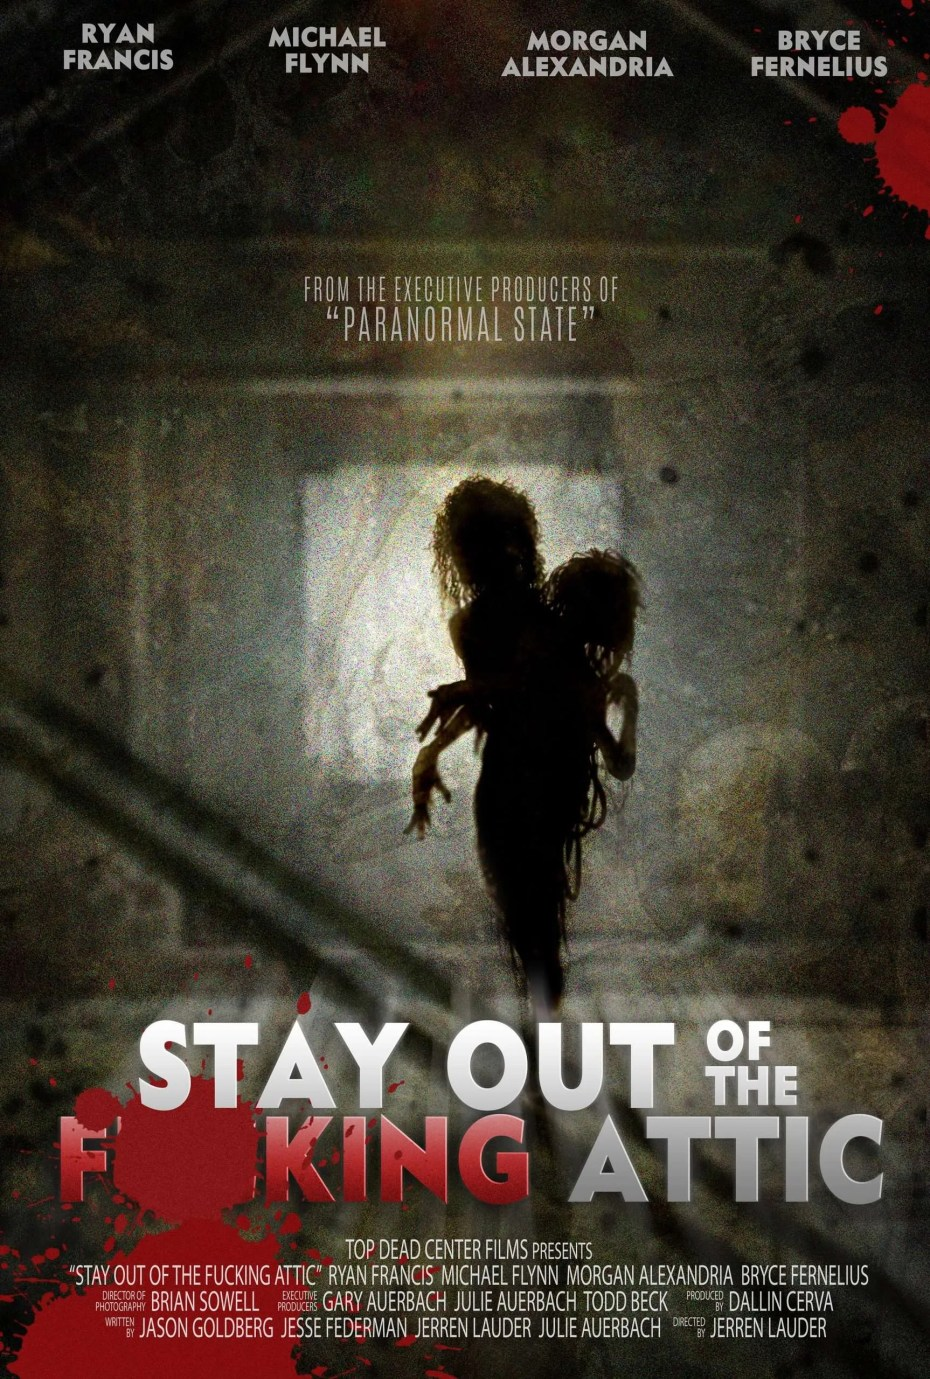 Stay Out of the Fking Attic